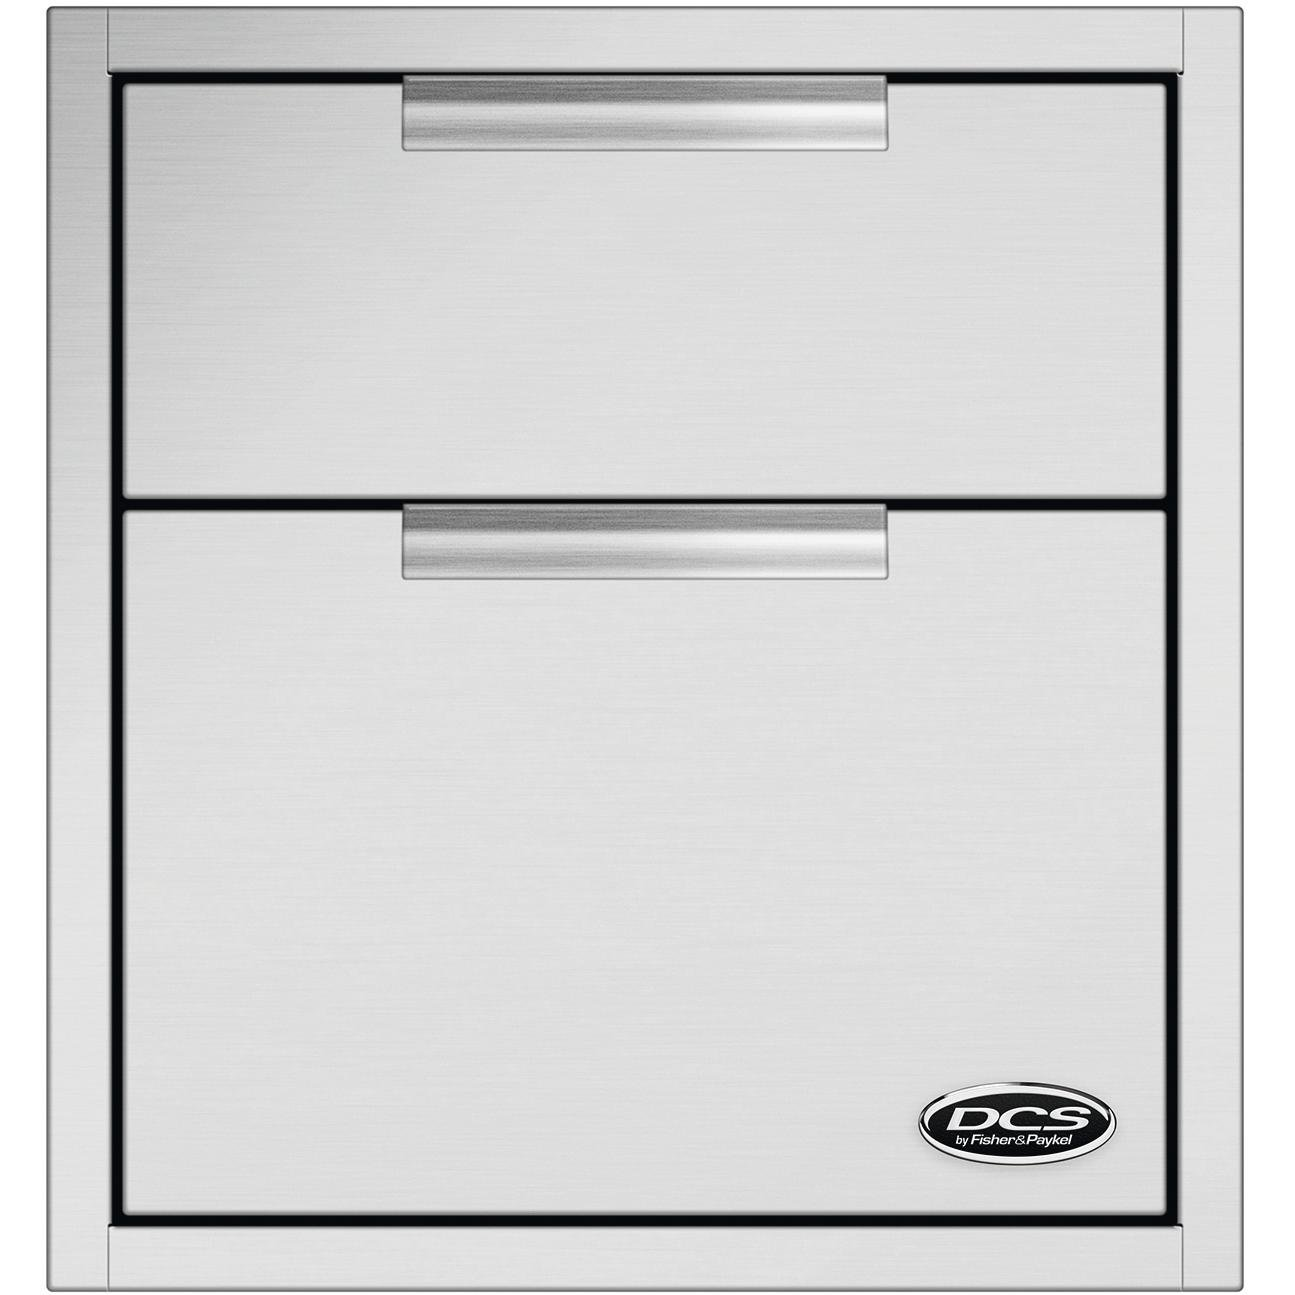 DCS Double Tower Drawer (71156) (TDD1-20), 20-Inch